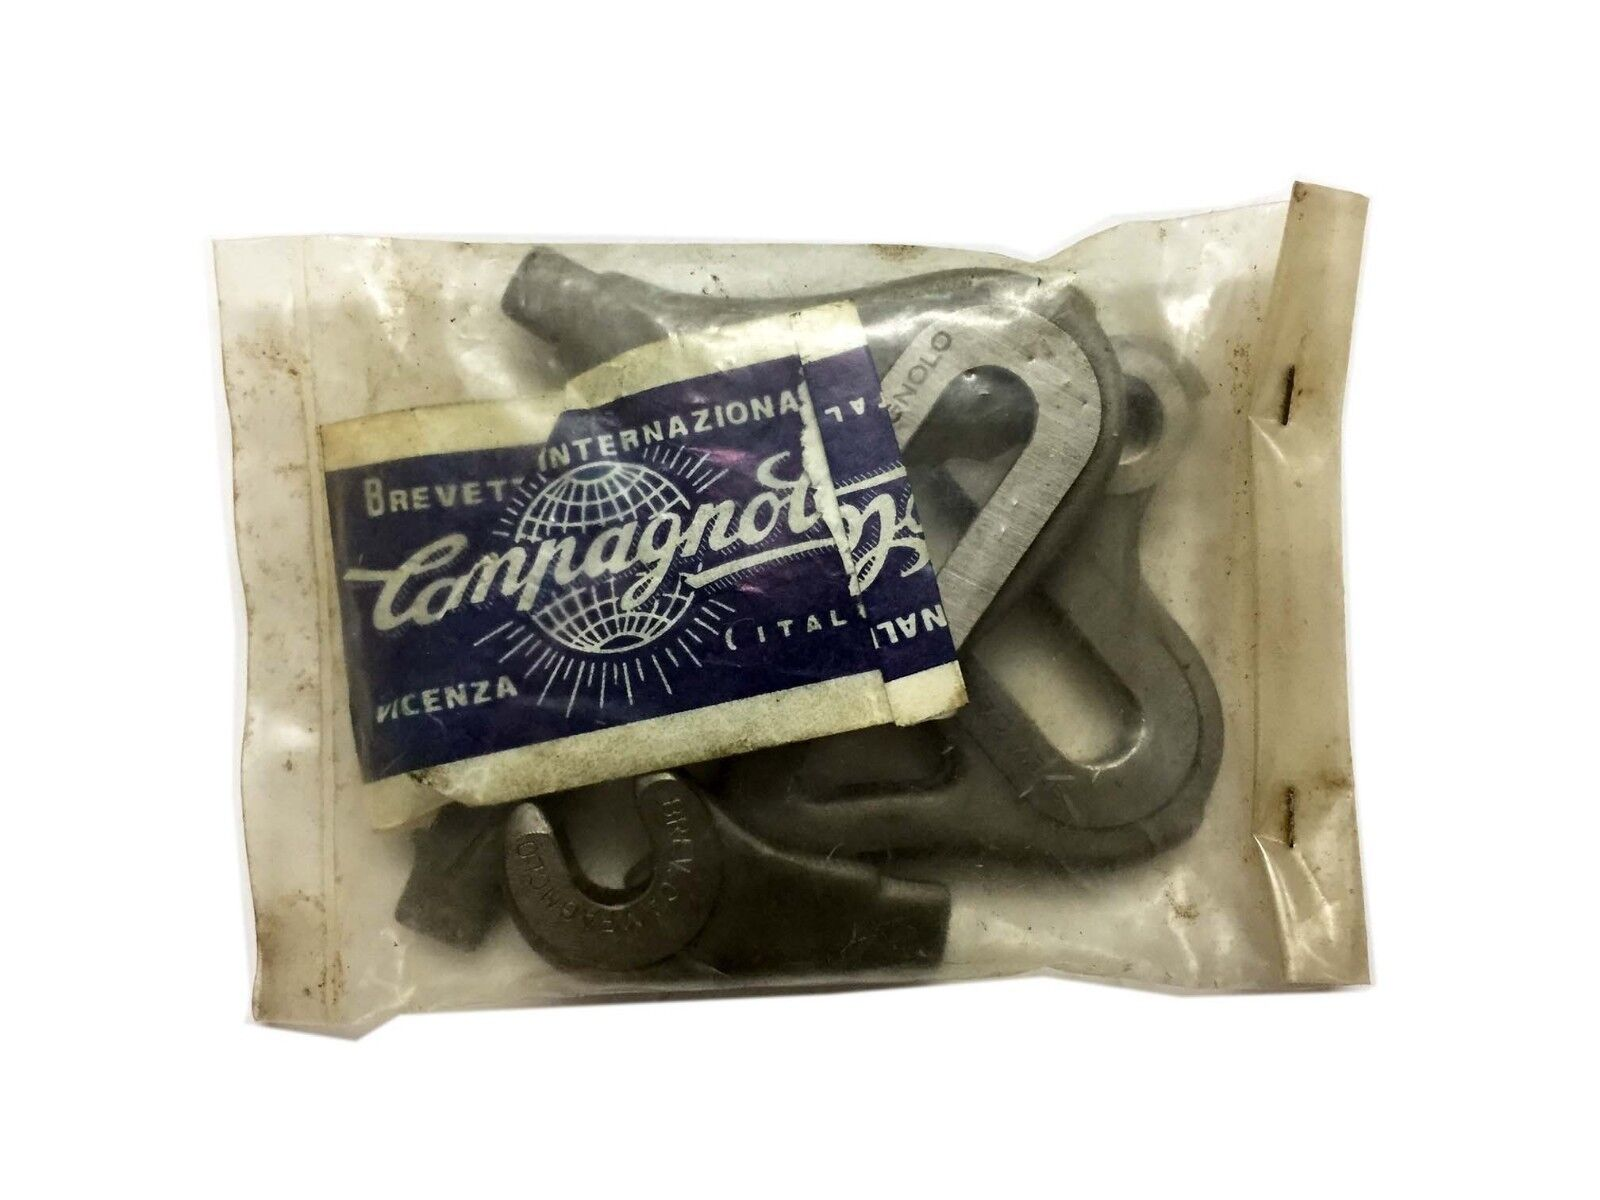 NOS Campagnolo 1010 A dropouts And Fork Ends NIB wheel adjusters